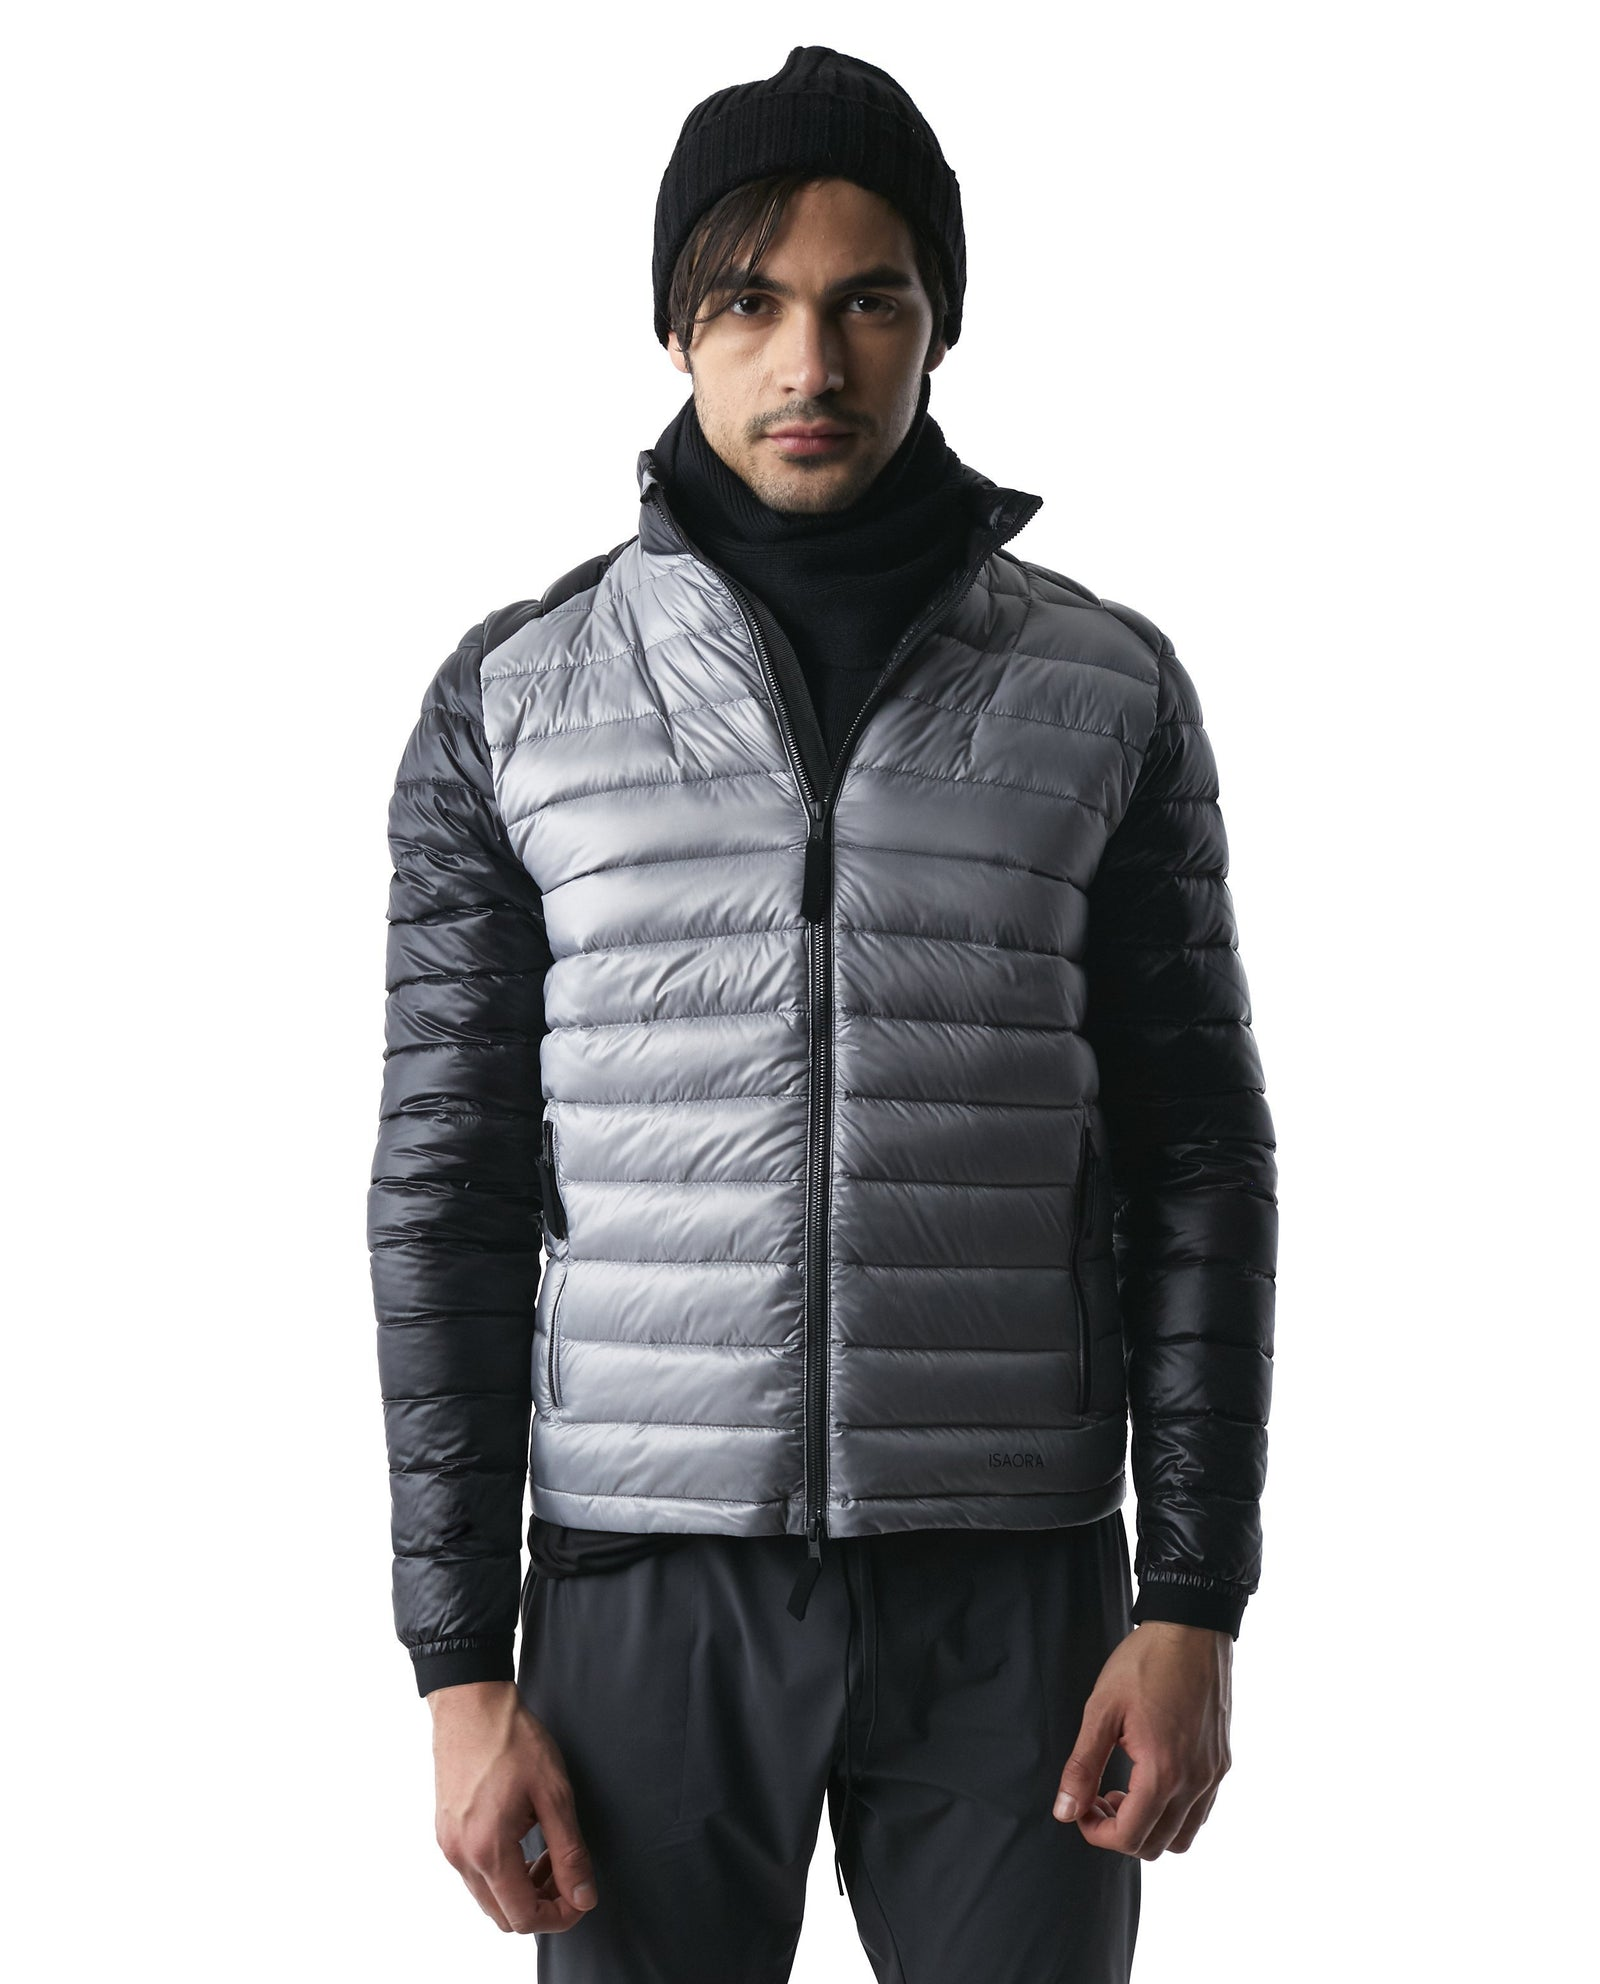 Microlight Down Jacket